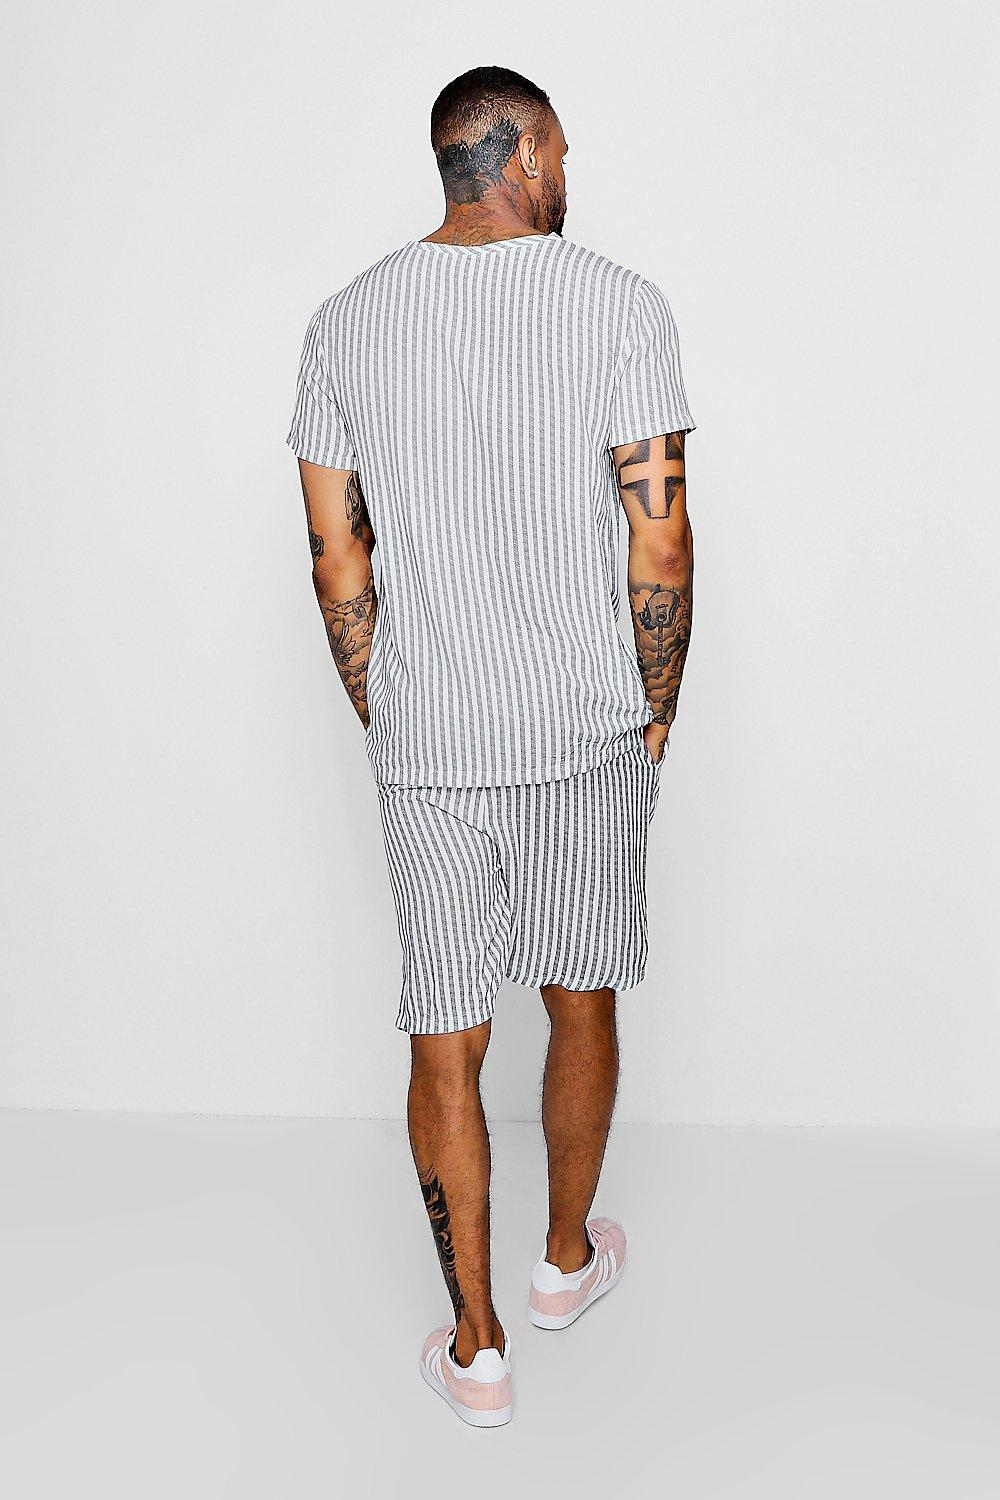 Vertical Shirt T Woven blue Stripe XZxBZq7Aw1